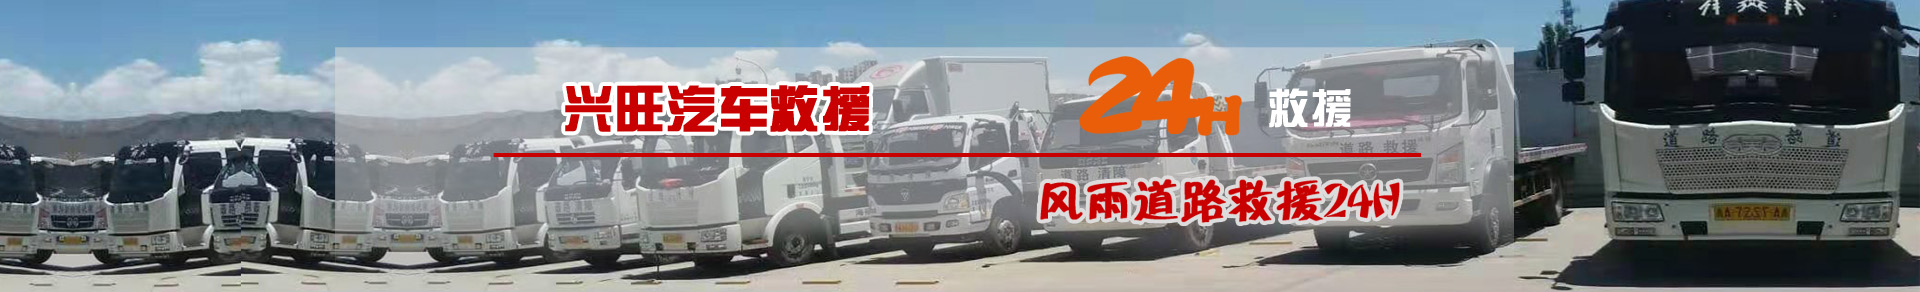 http://www.xnxingwang.com/data/images/slide/20190723170531_542.jpg